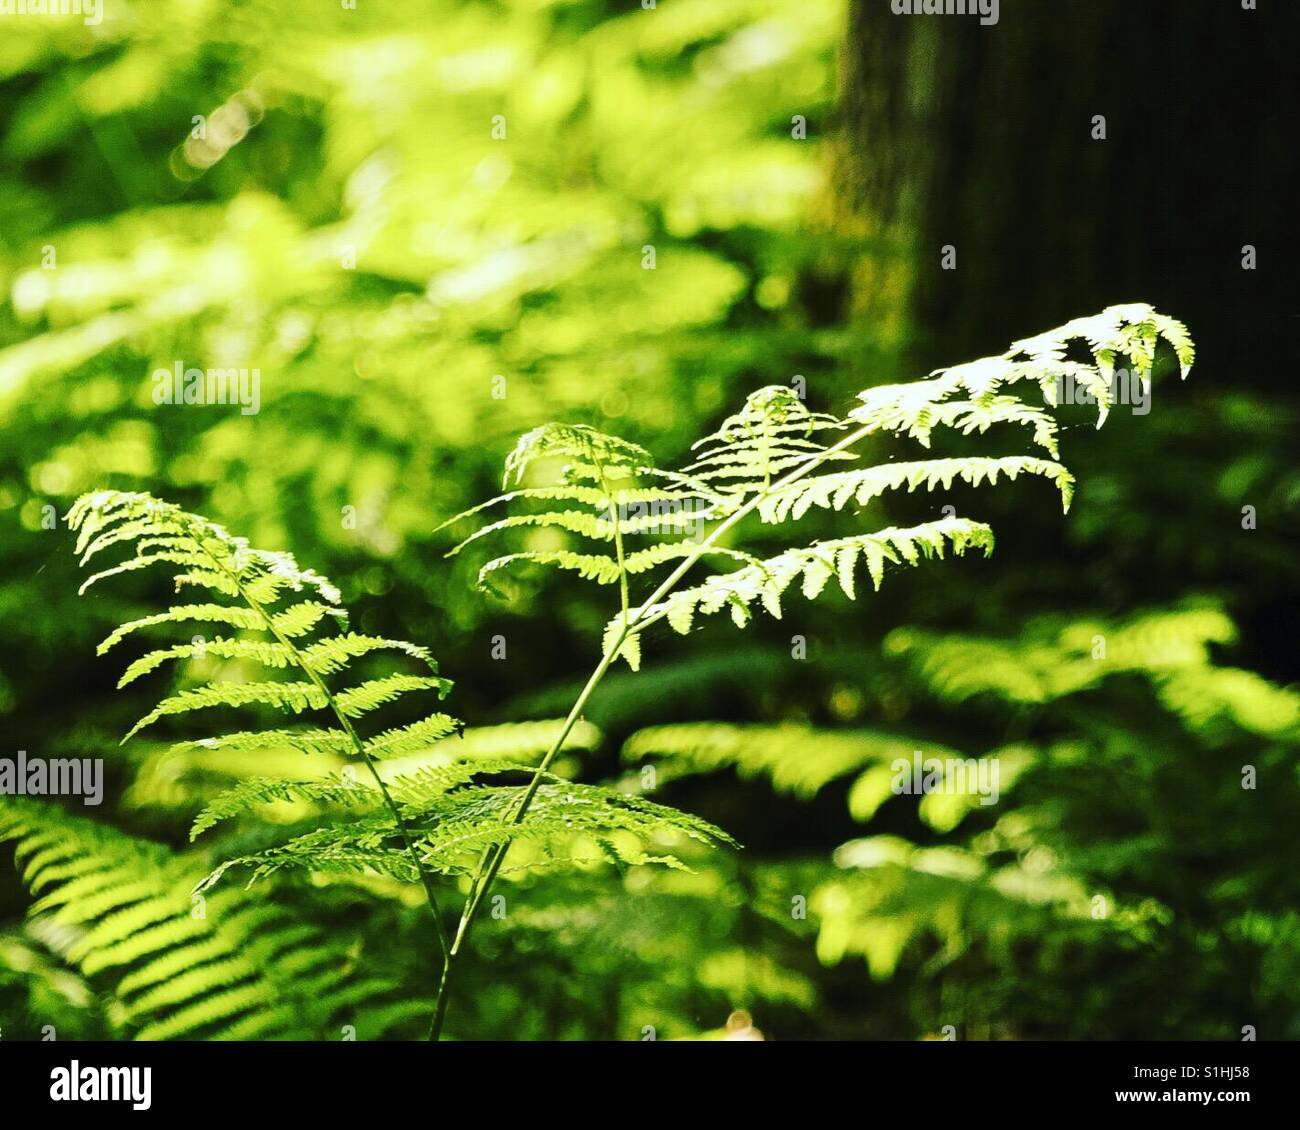 Fern leaf in sunlight - Stock Image